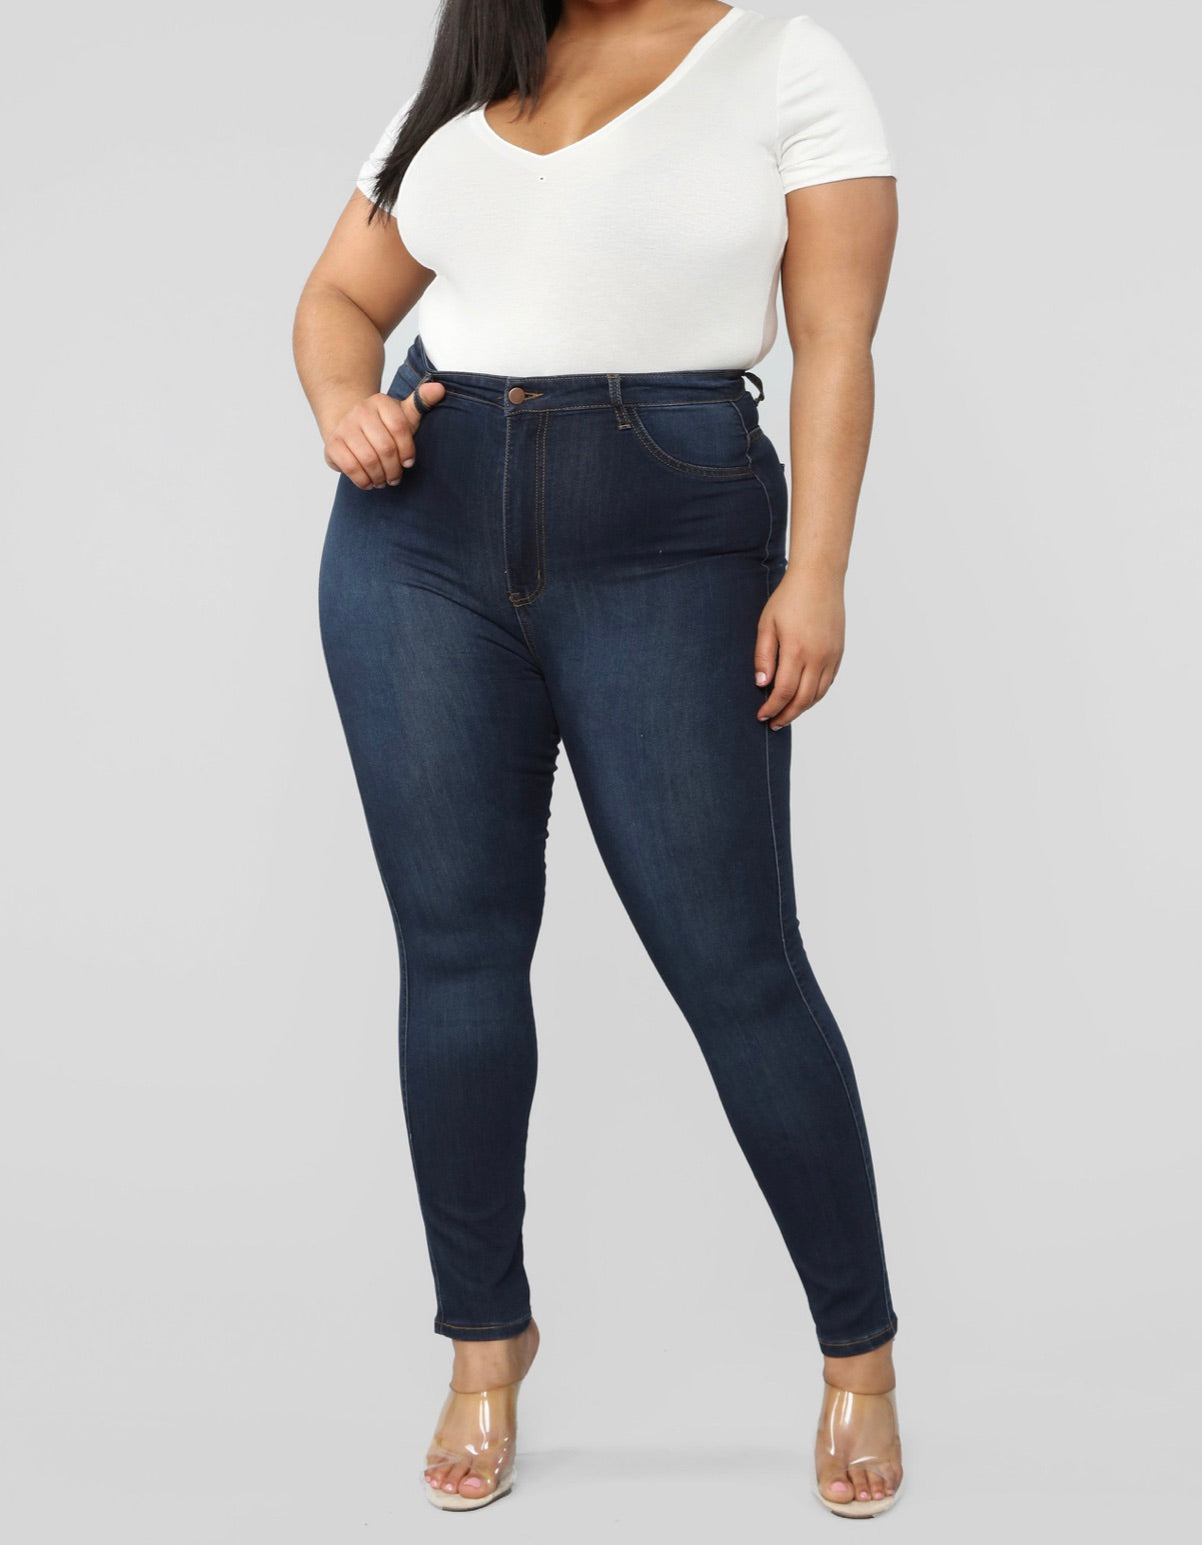 Best Classic High Waisted Skinny Jeans / Dark Denim/ Curvy Girlz